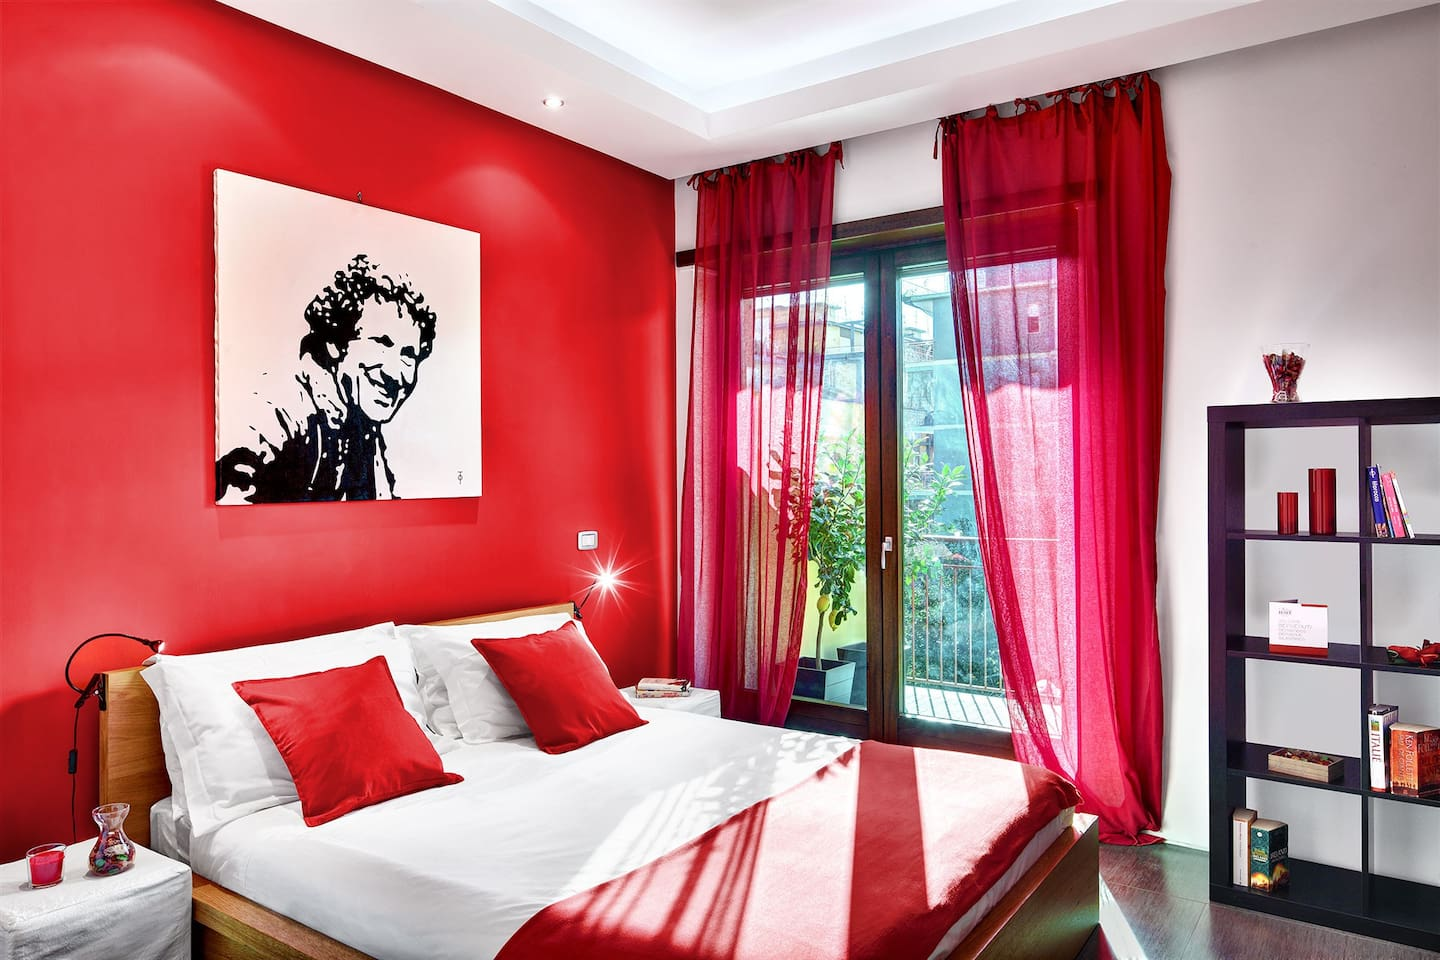 The red double bedroom